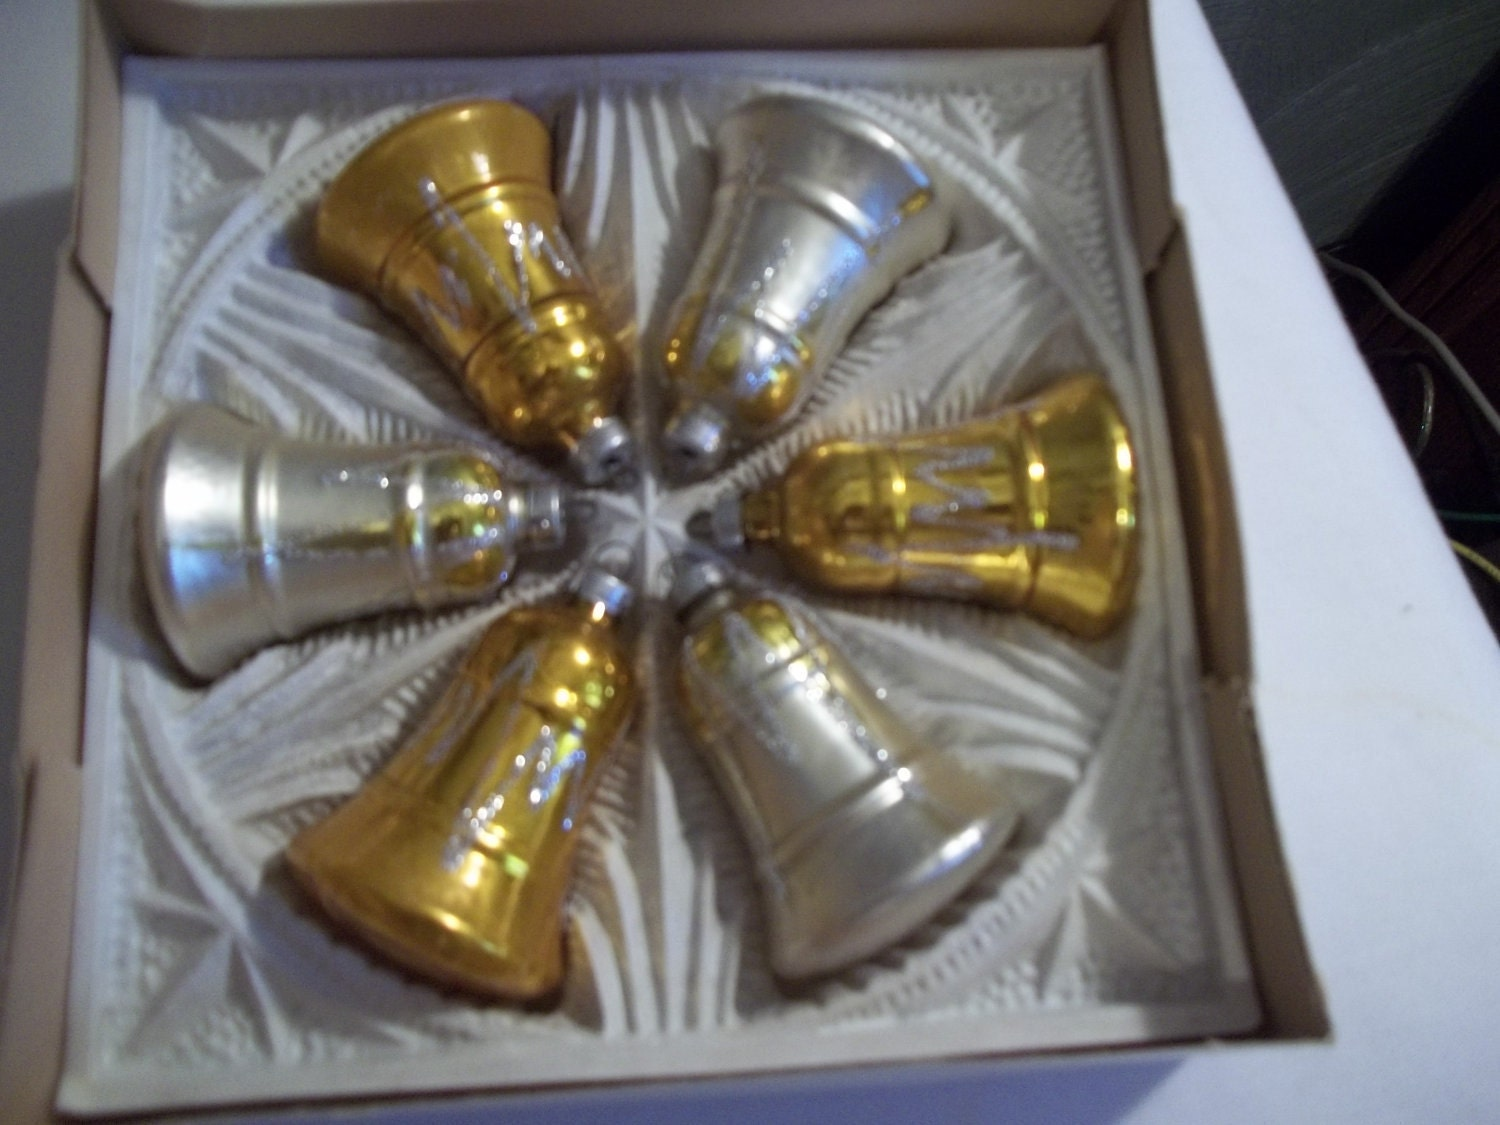 Vintage Silver & Gold Bell Ornaments, Set of 6 w/box, Shiny, Glittery, West Germany